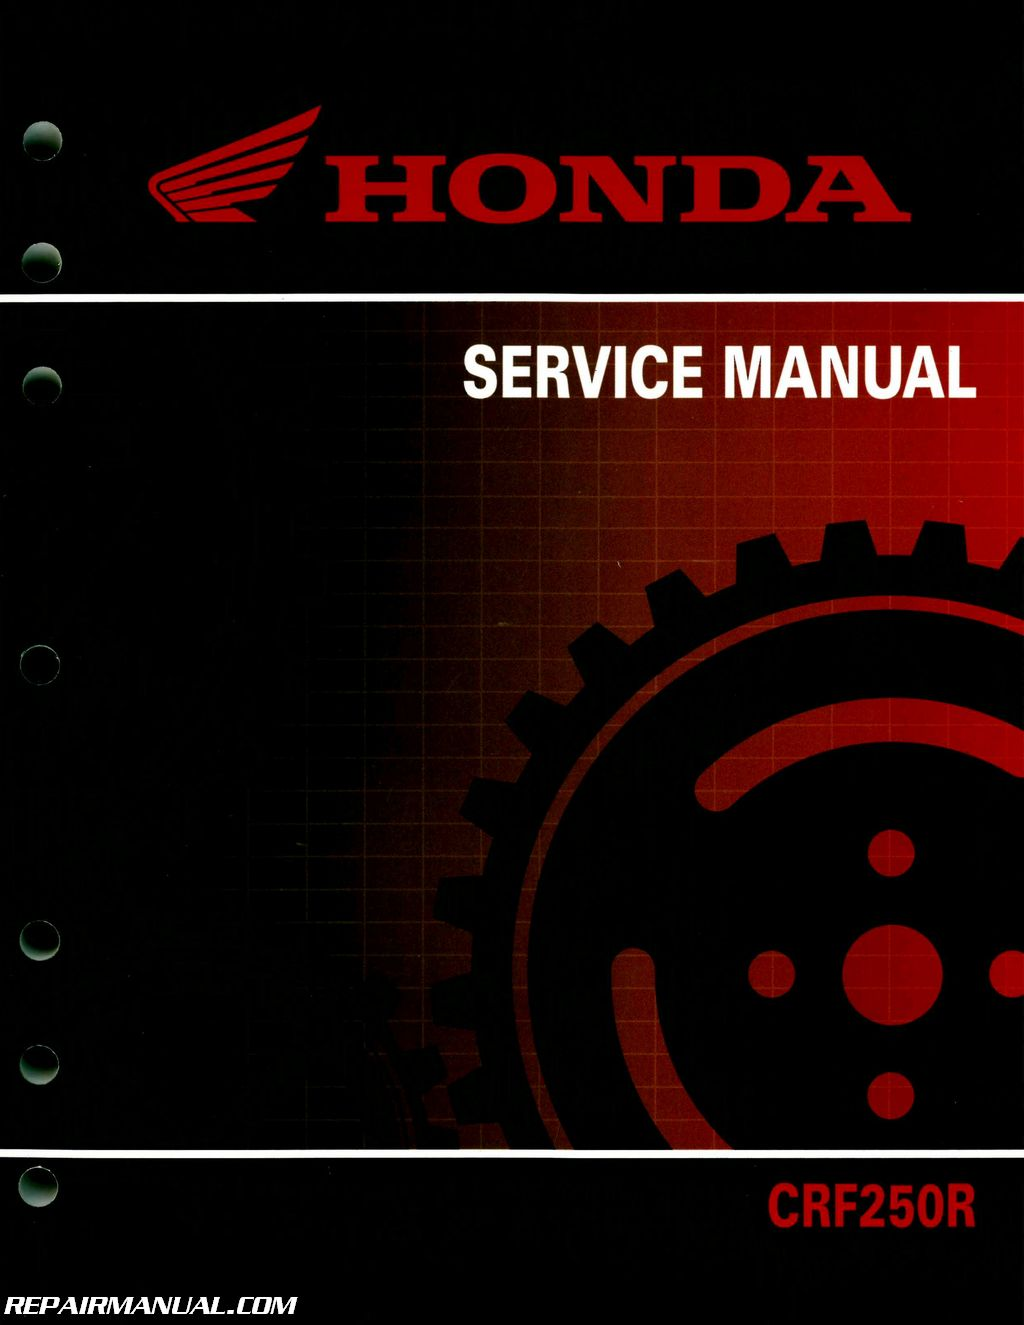 2010 2013 honda crf250r motorcycle service manual repair manuals honda crf250r service manual